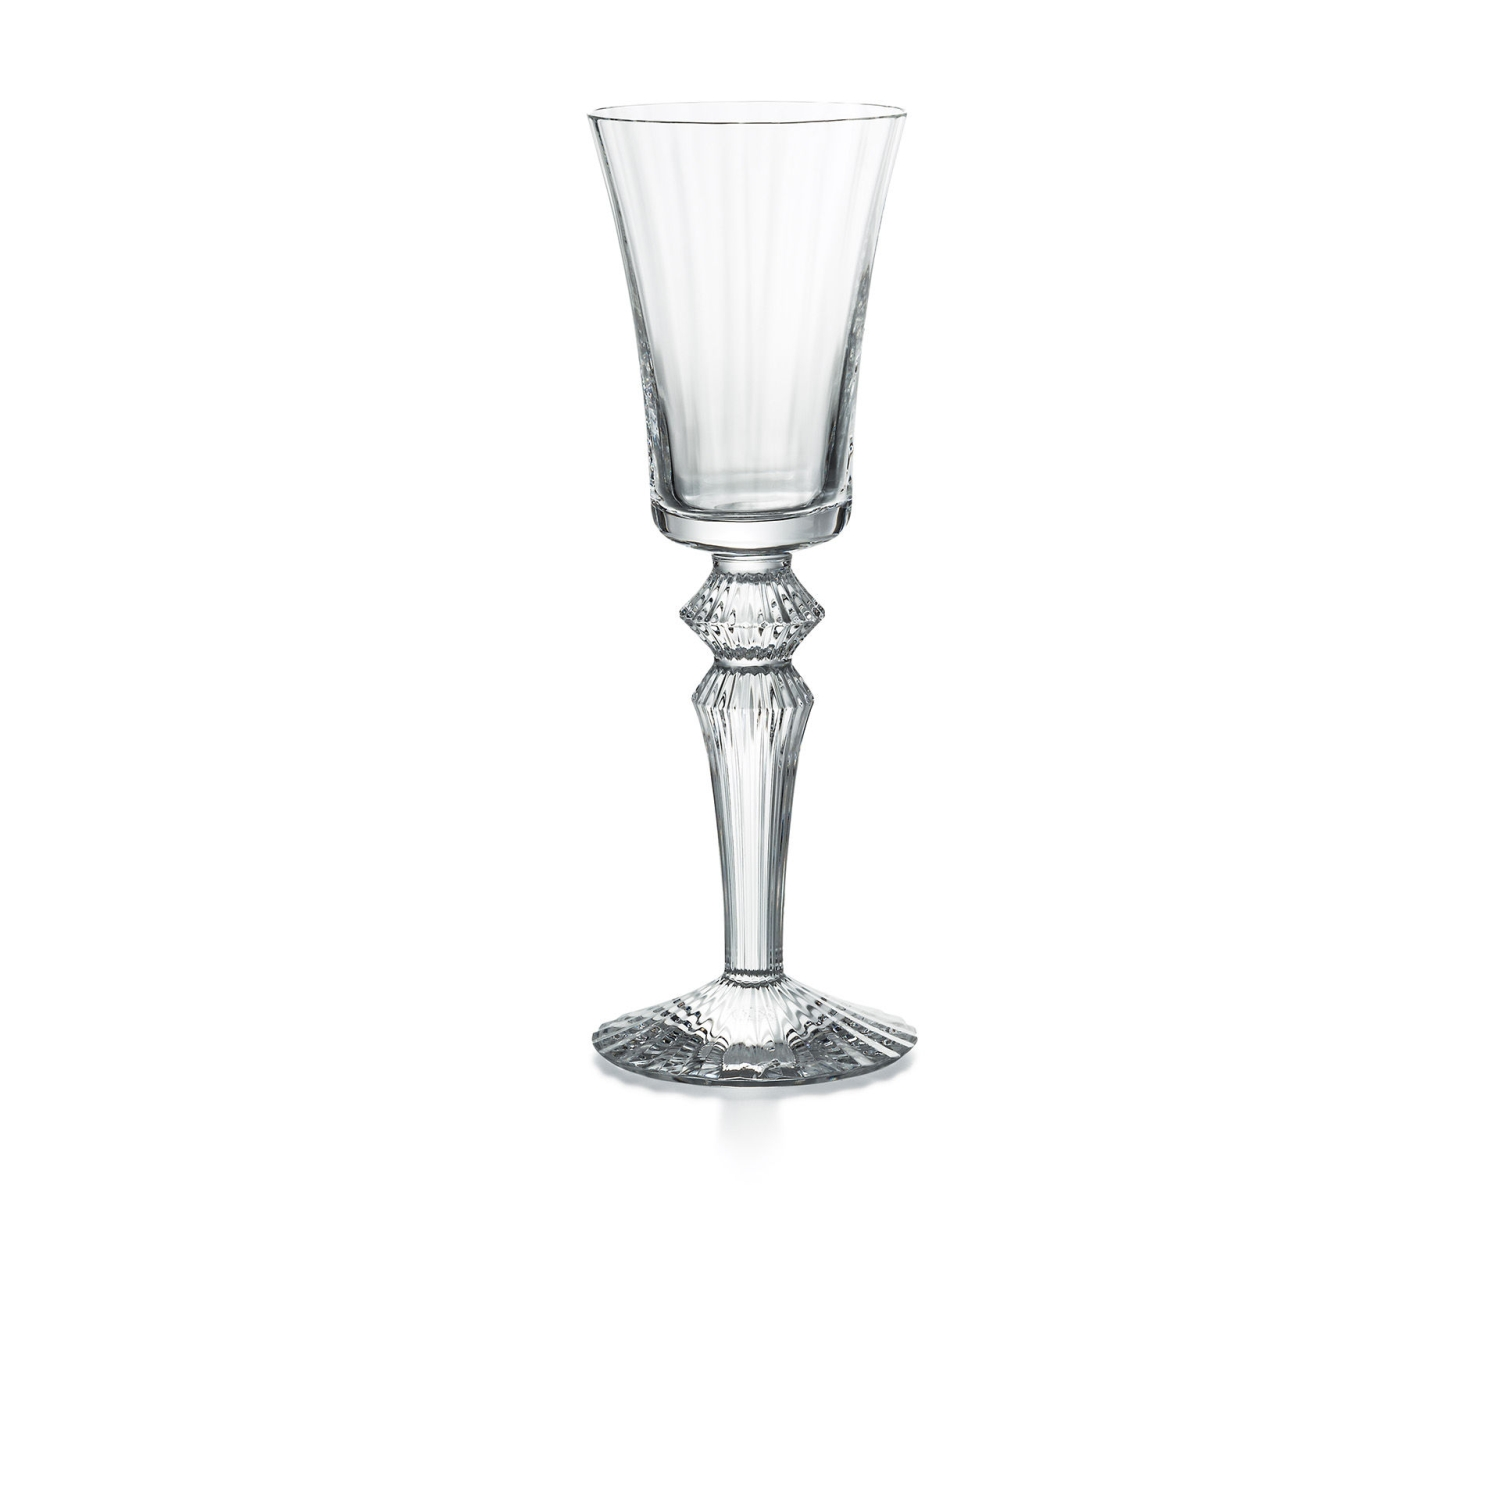 glass Baccarat mille nuits wine glass 2604316